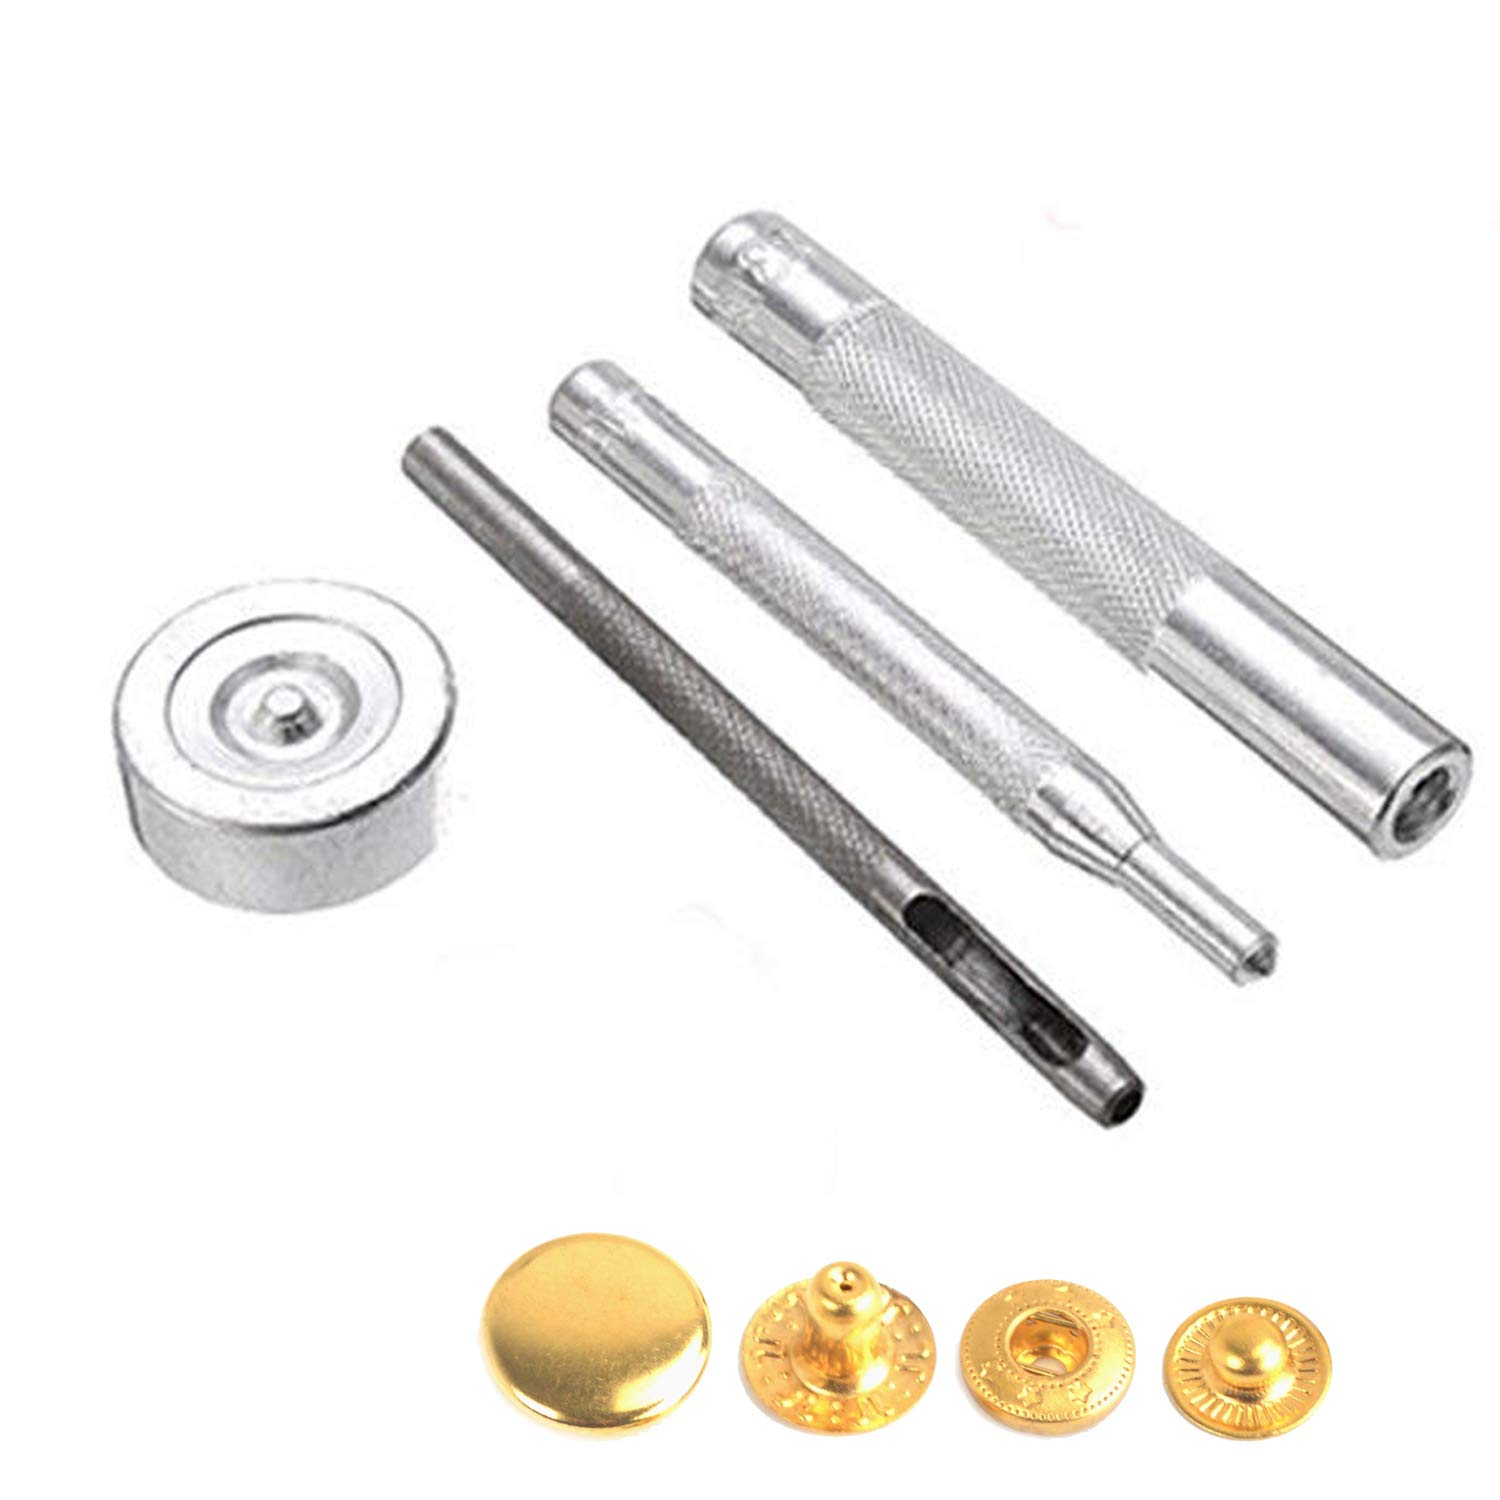 Trimming Shop 12mm 10pcs Gold S Spring Press Stud Snap Fastener Four Parts with Fixing Hand Tools for DIY Arts /& Crafts Projects Leathercrafts